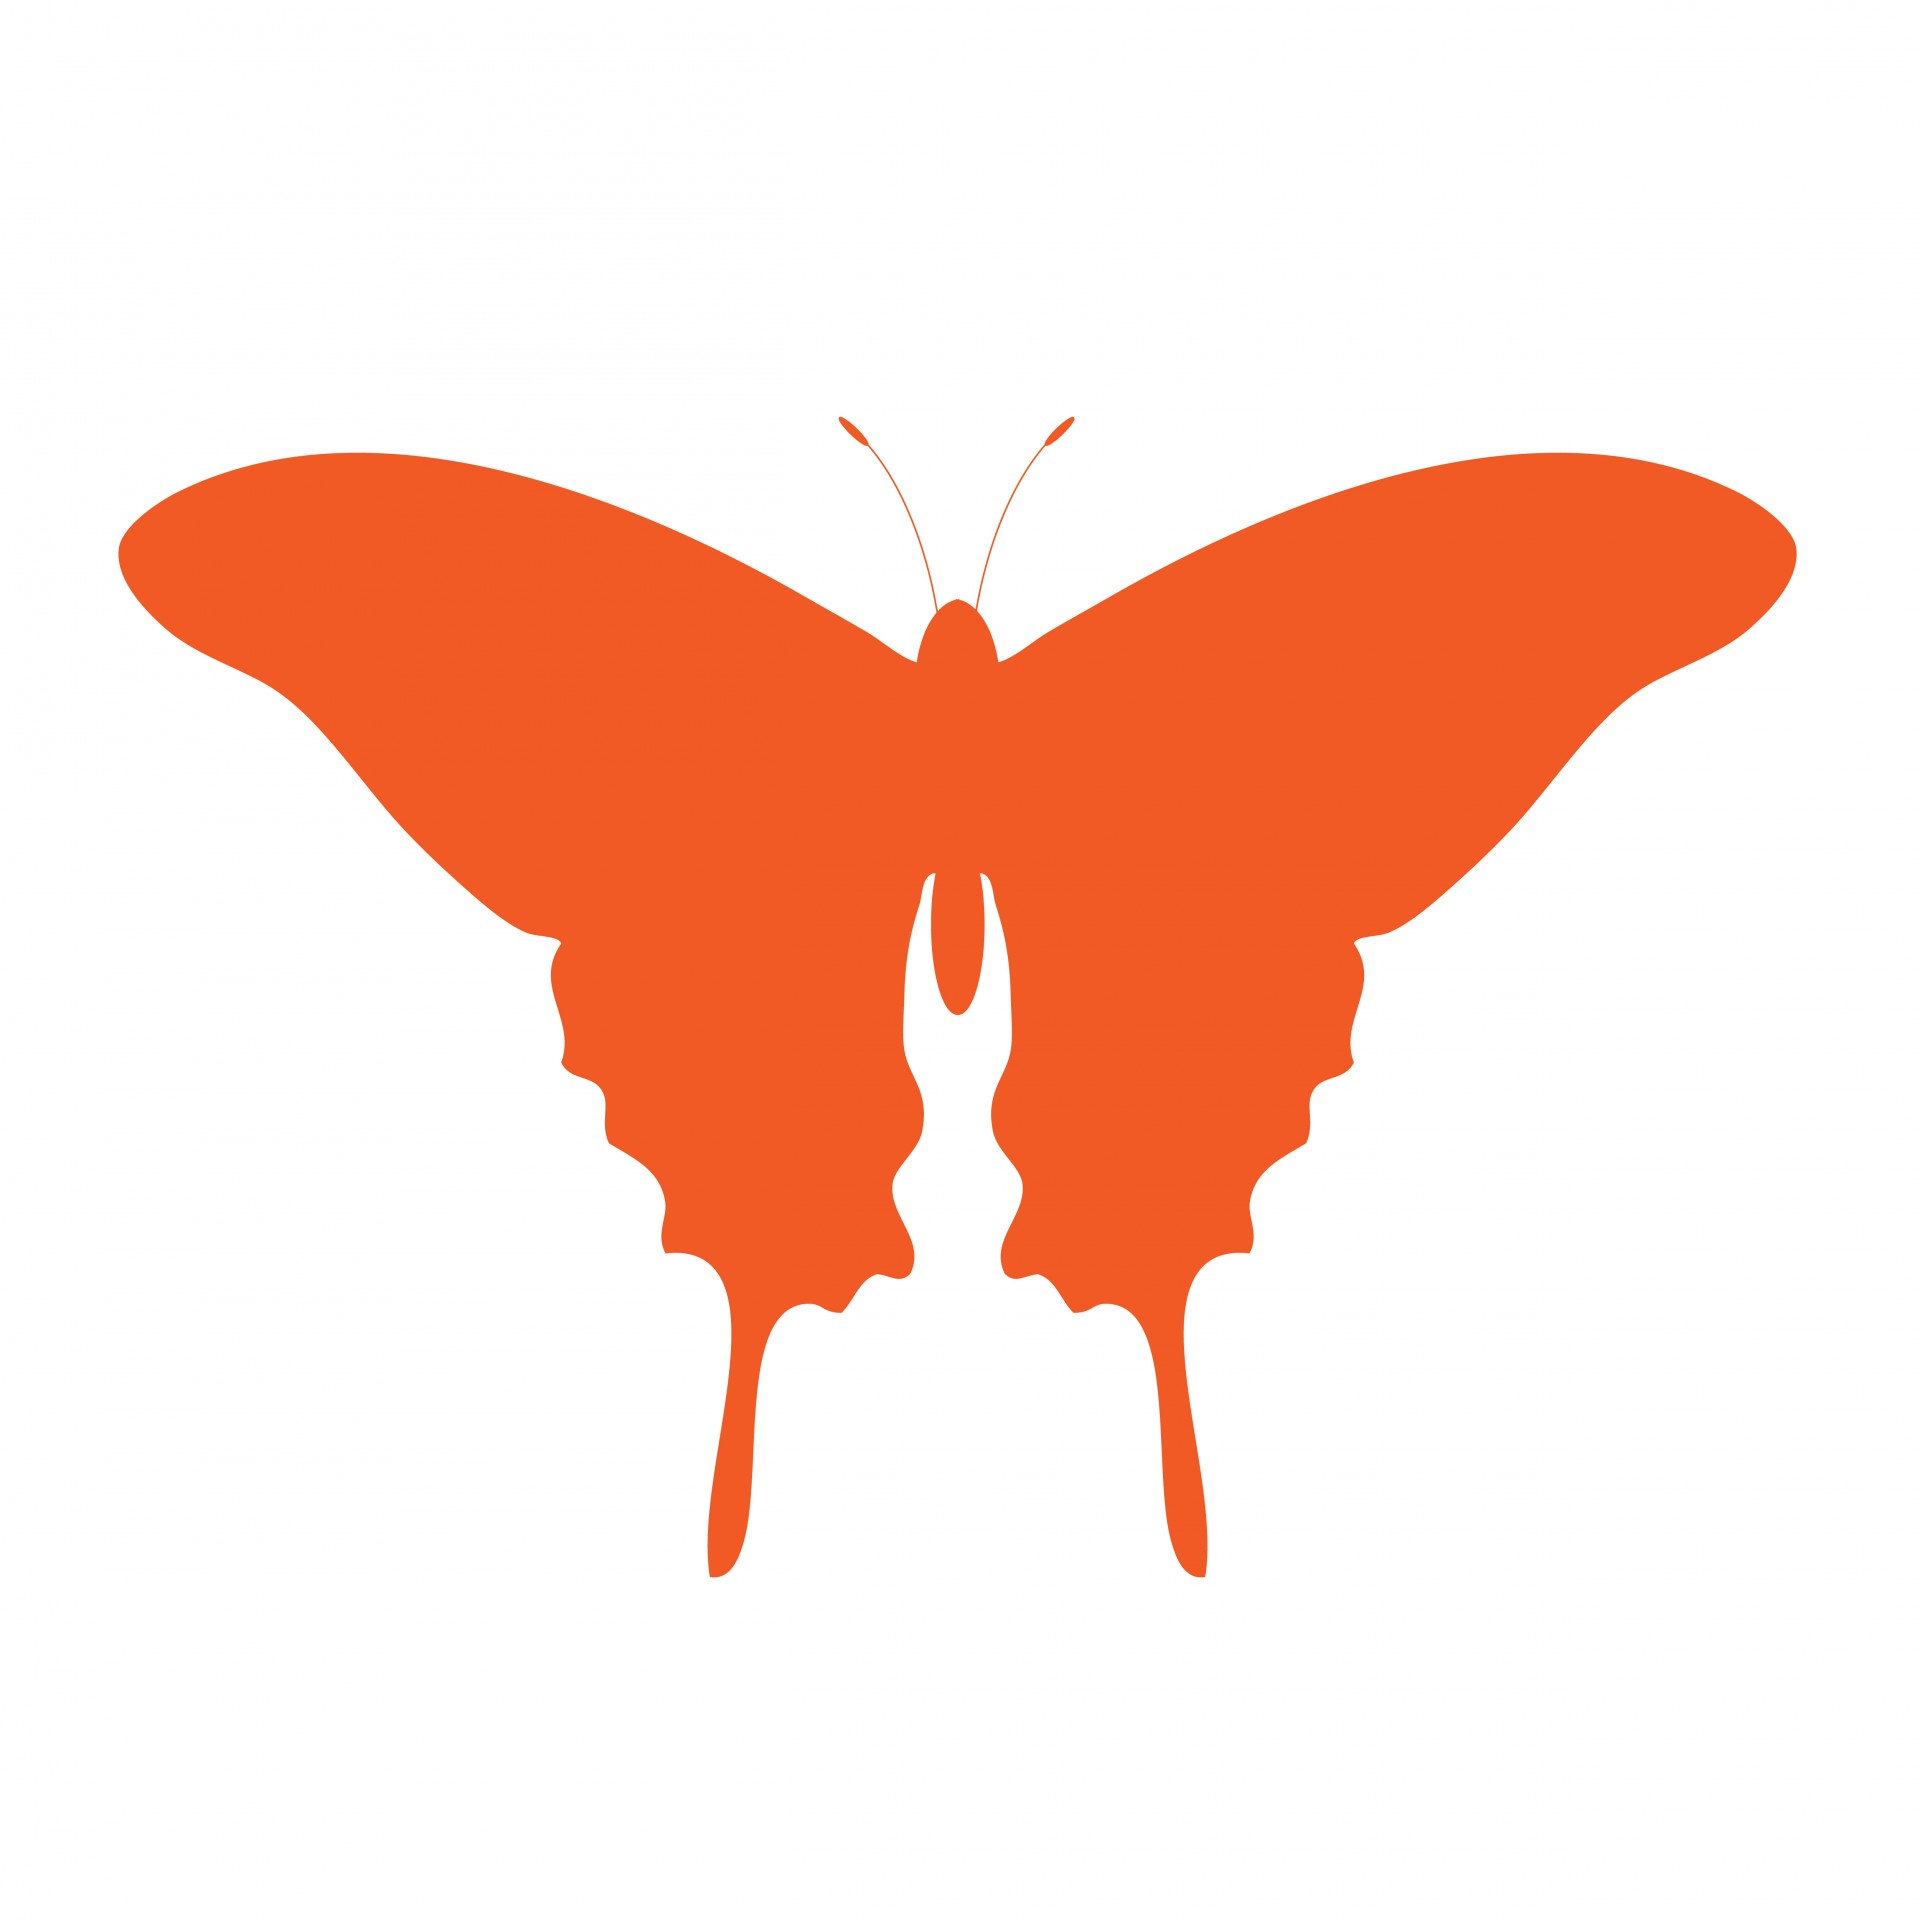 1920x1920 Orange Butterfly Clipart Free Stock Photo